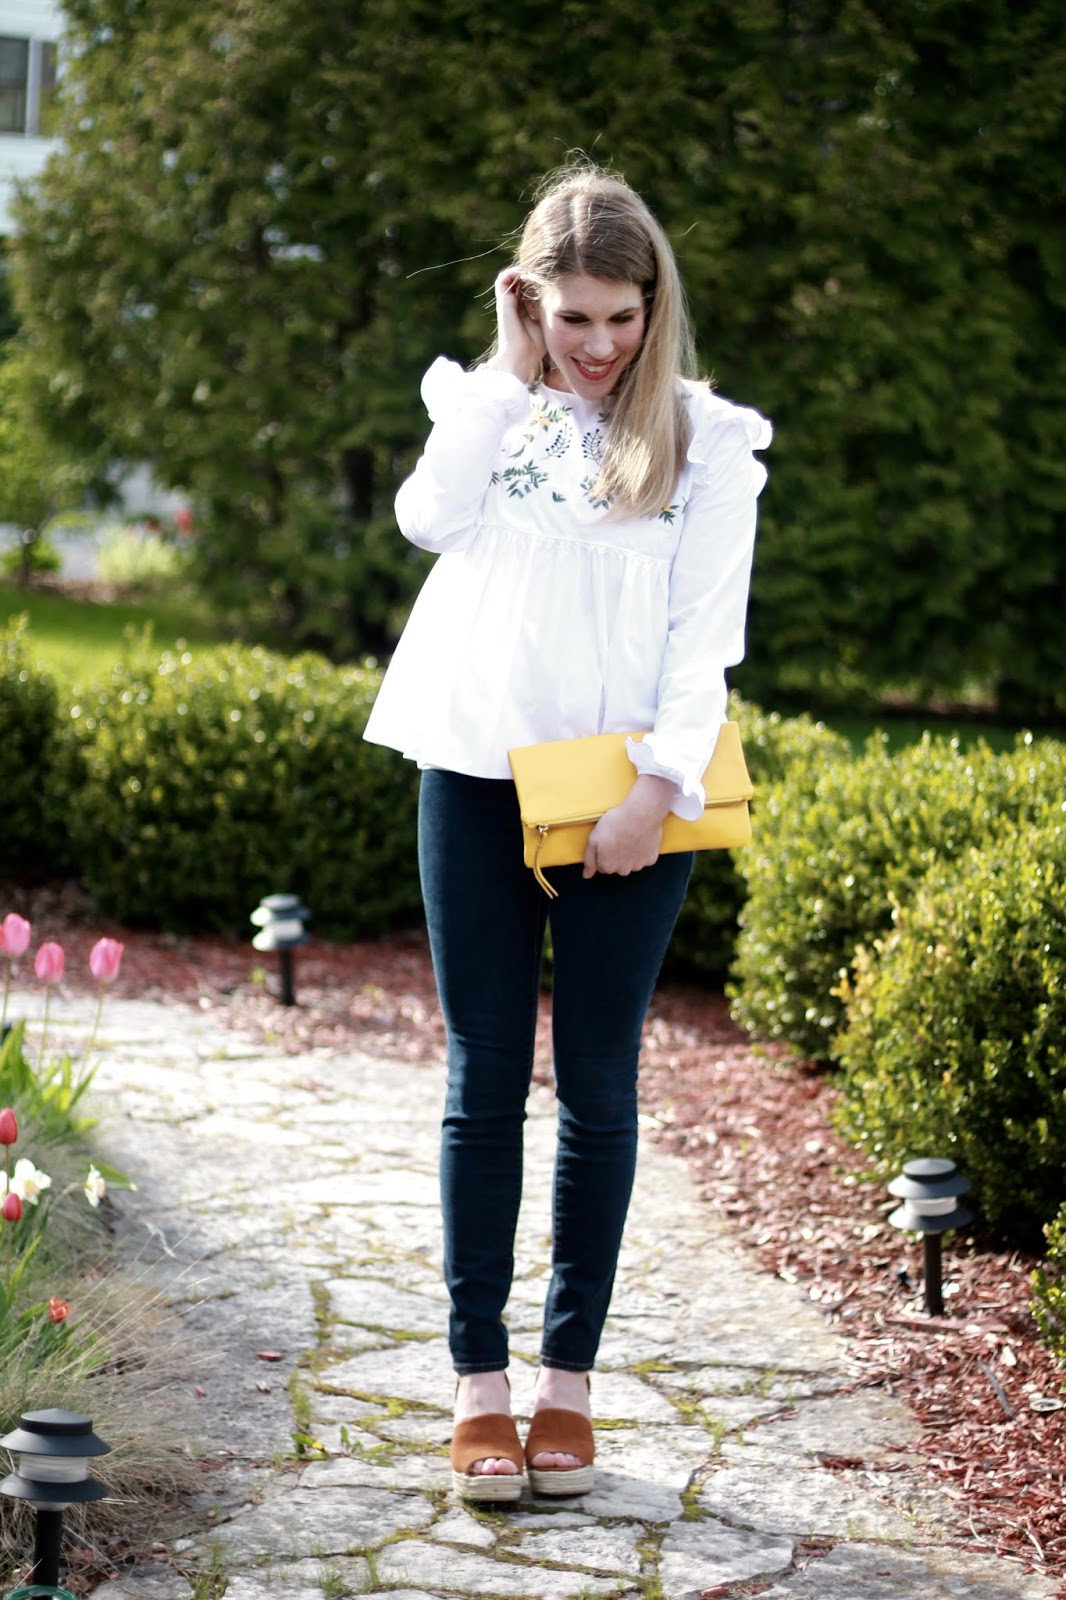 white embroidered blouse, Old Navy maternity jeans, Steve Madden wedge sandals, yellow clutch